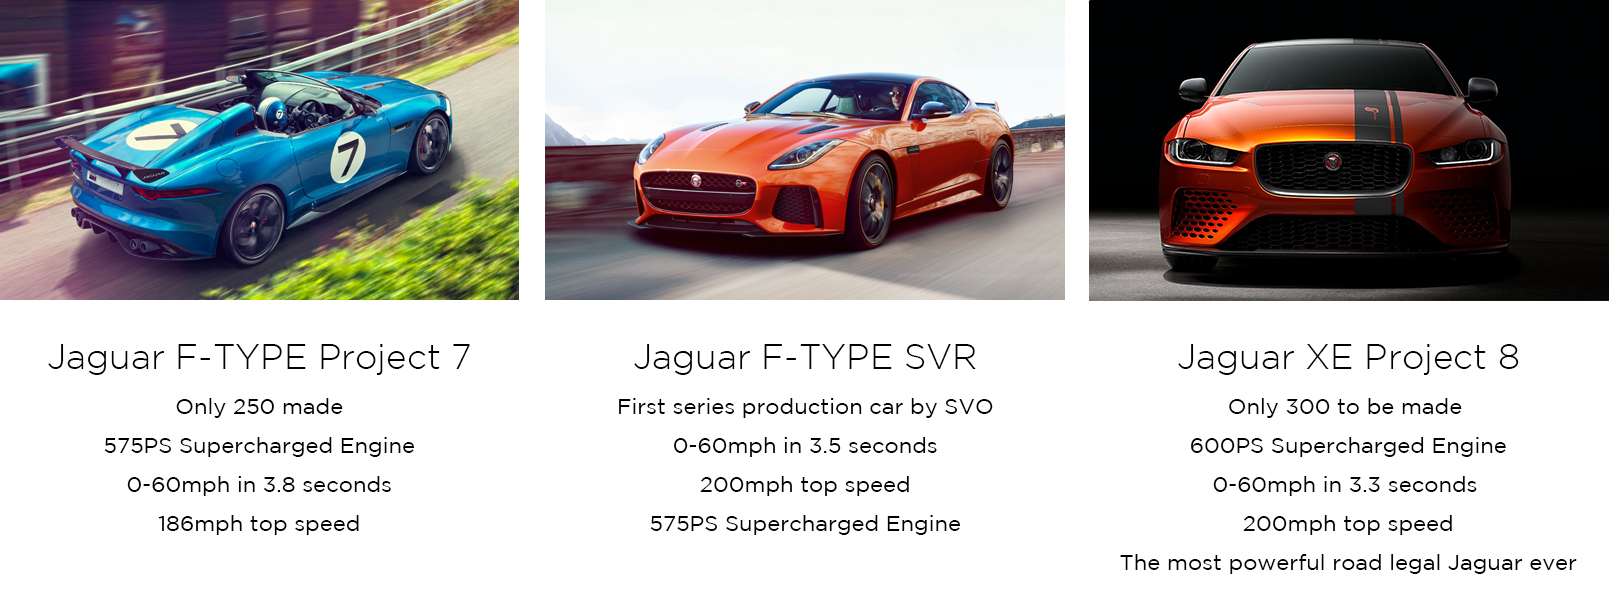 Jaguar statistics: F-Type Project 7, SVR and XE Project 8.